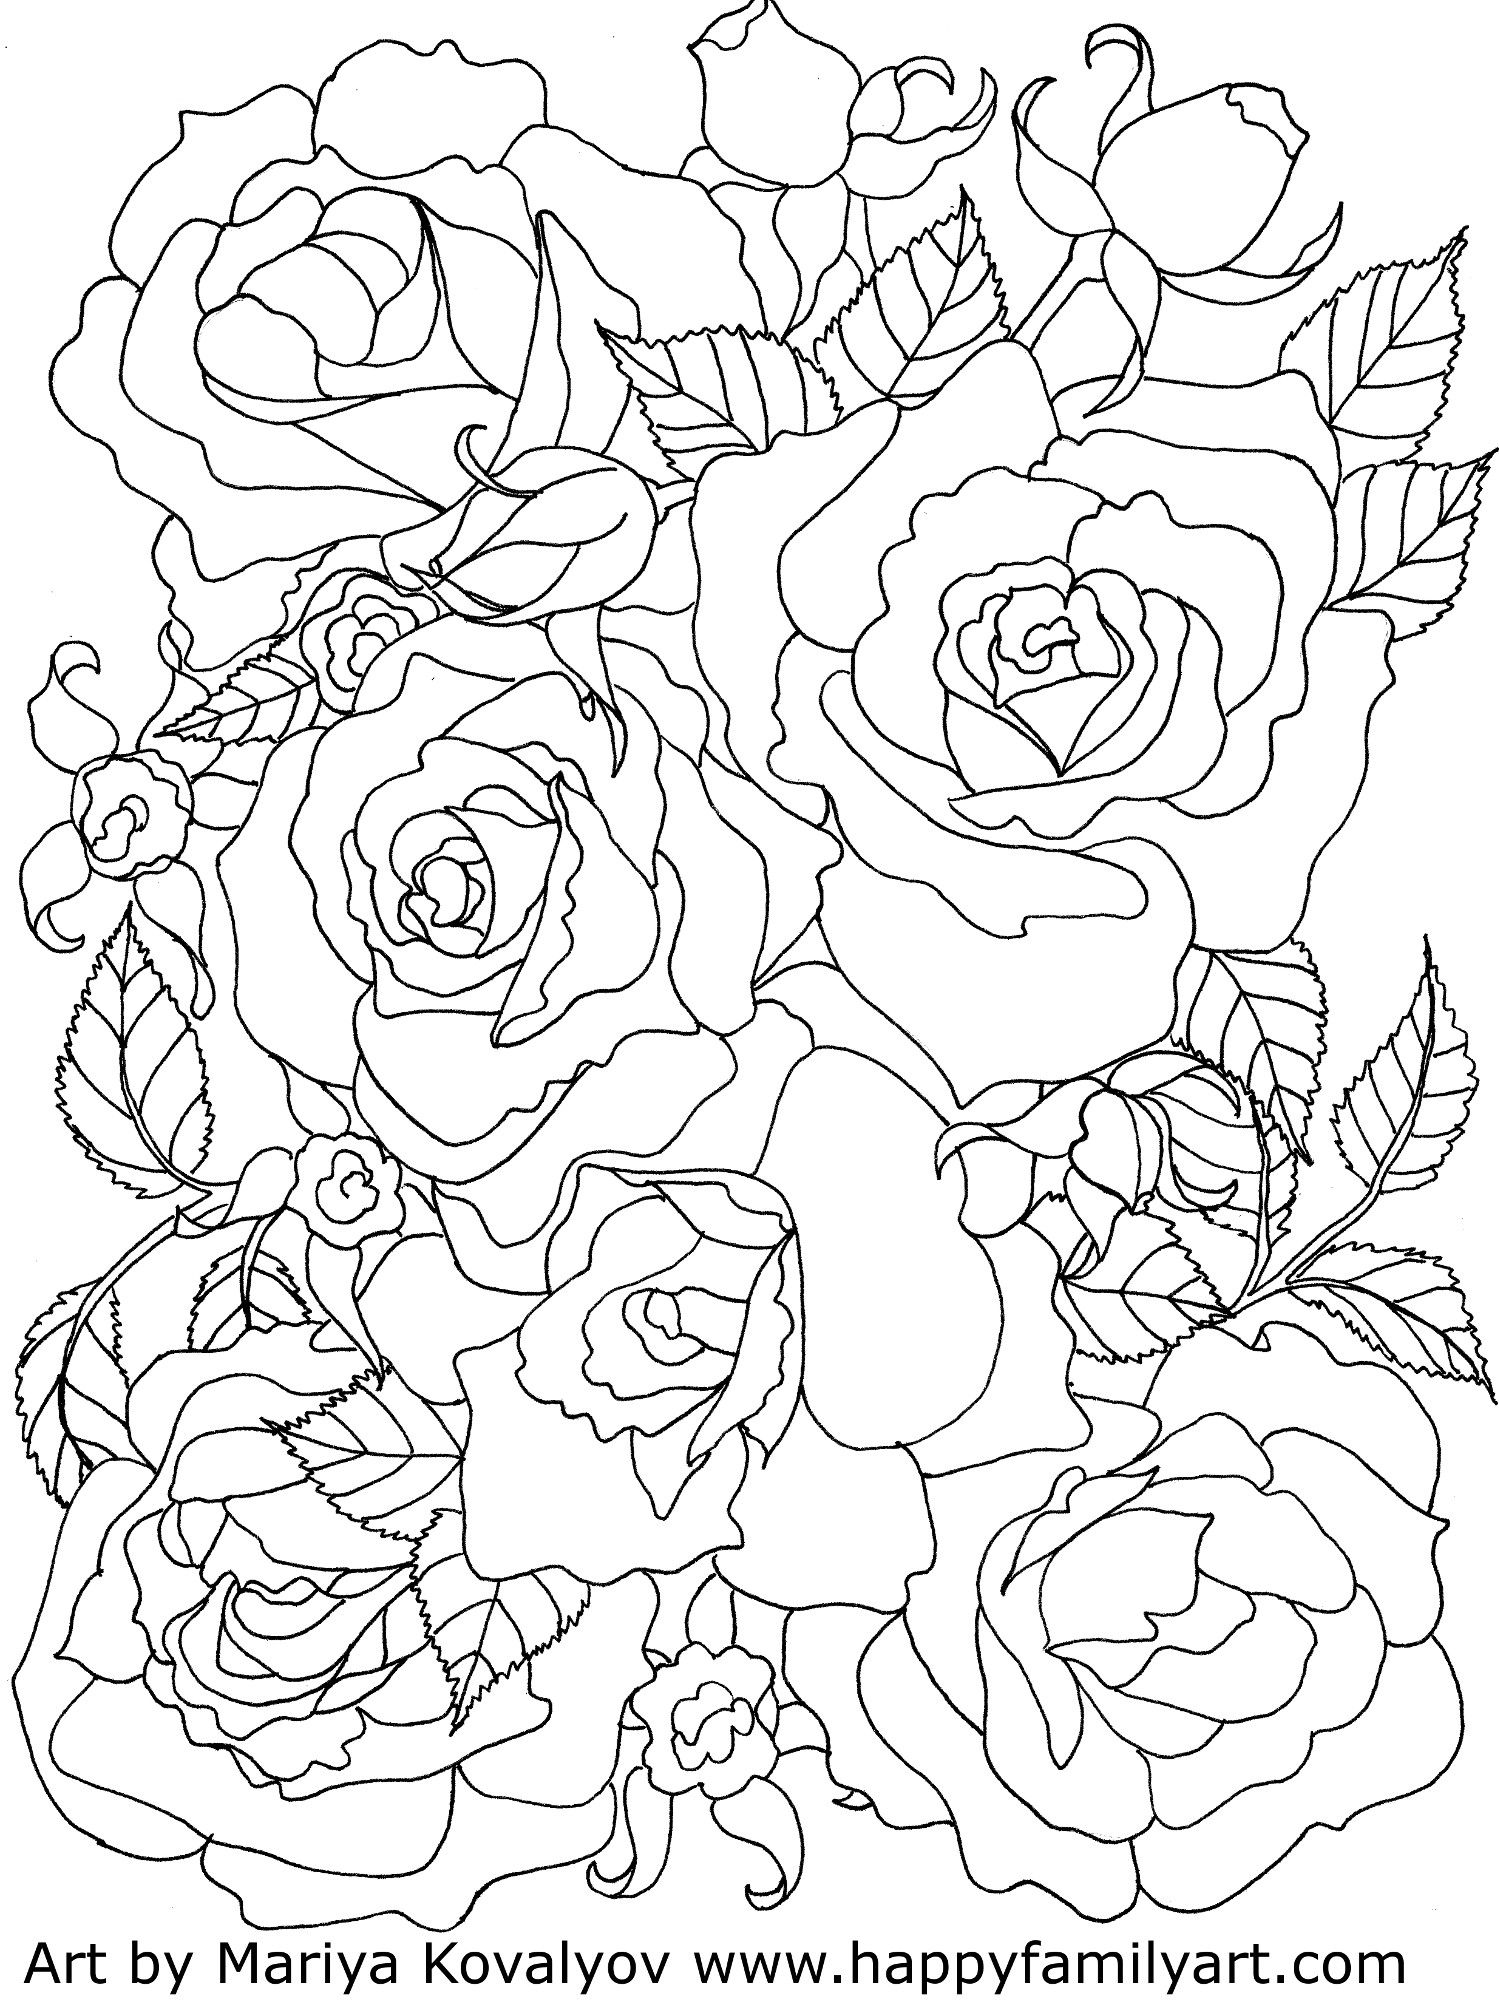 Happy Family Art Original And Fun Coloring Pages Rose Coloring Pages Flower Coloring Pages Printable Flower Coloring Pages